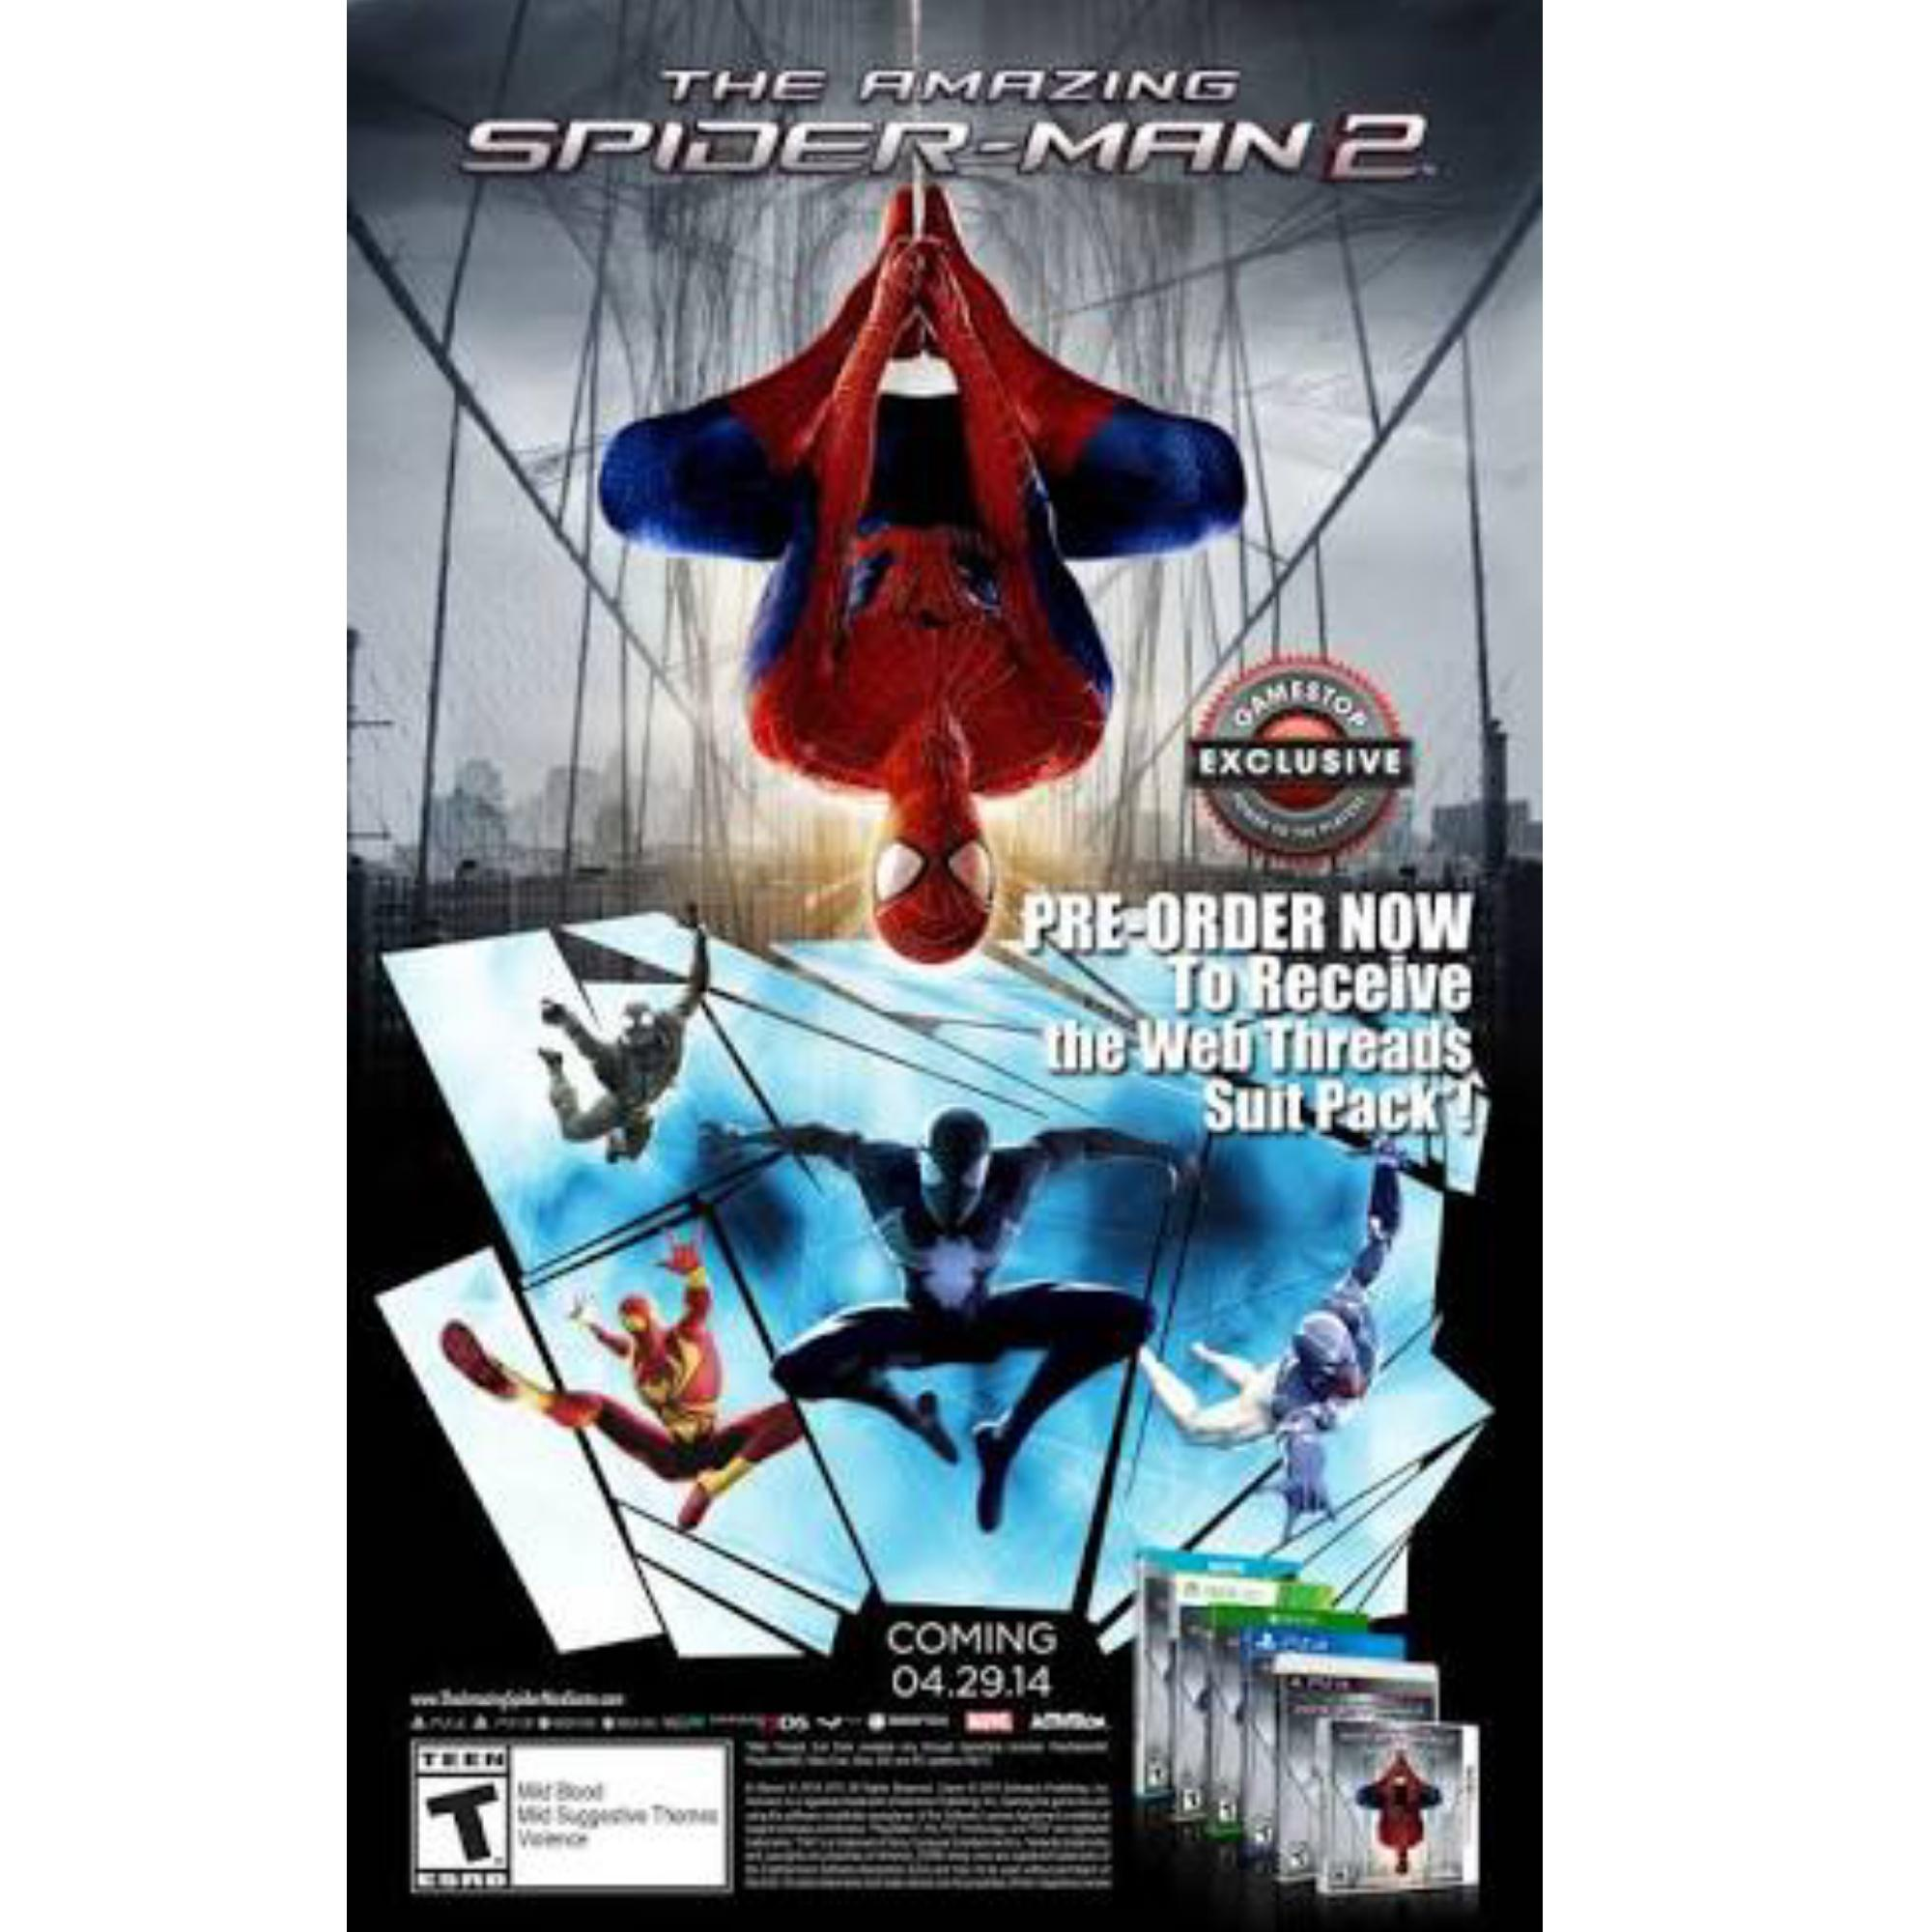 The Amazing Spider-Man 2 Full Action Computer/laptop Game DVD